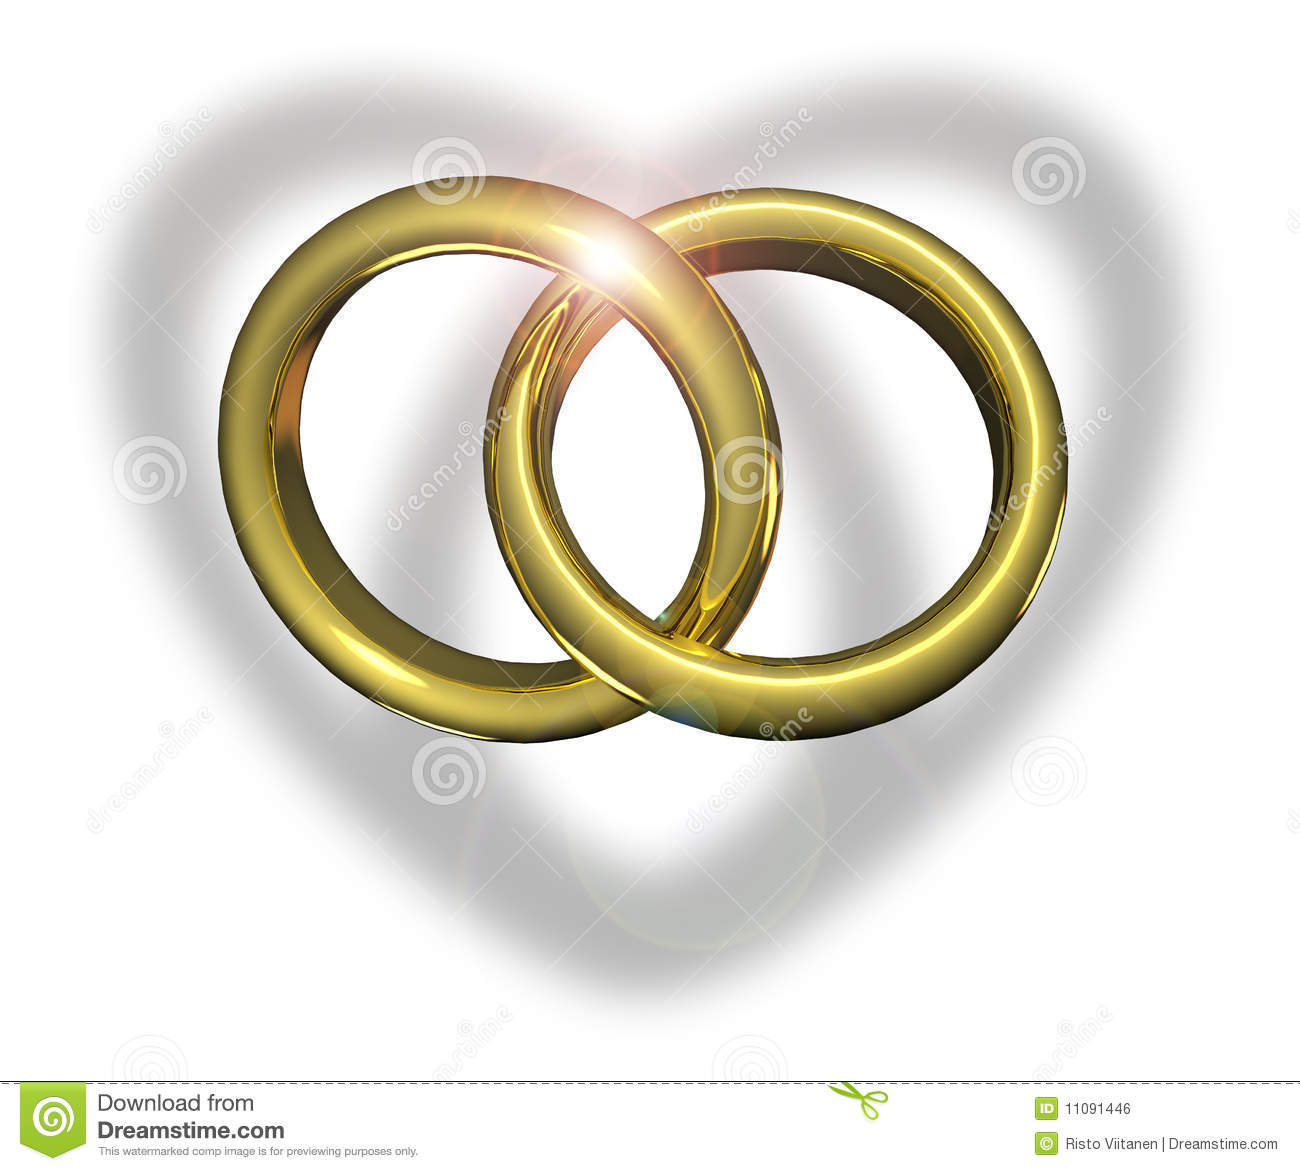 Linked Wedding Rings Stock Illustrations 107 Linked Wedding Rings